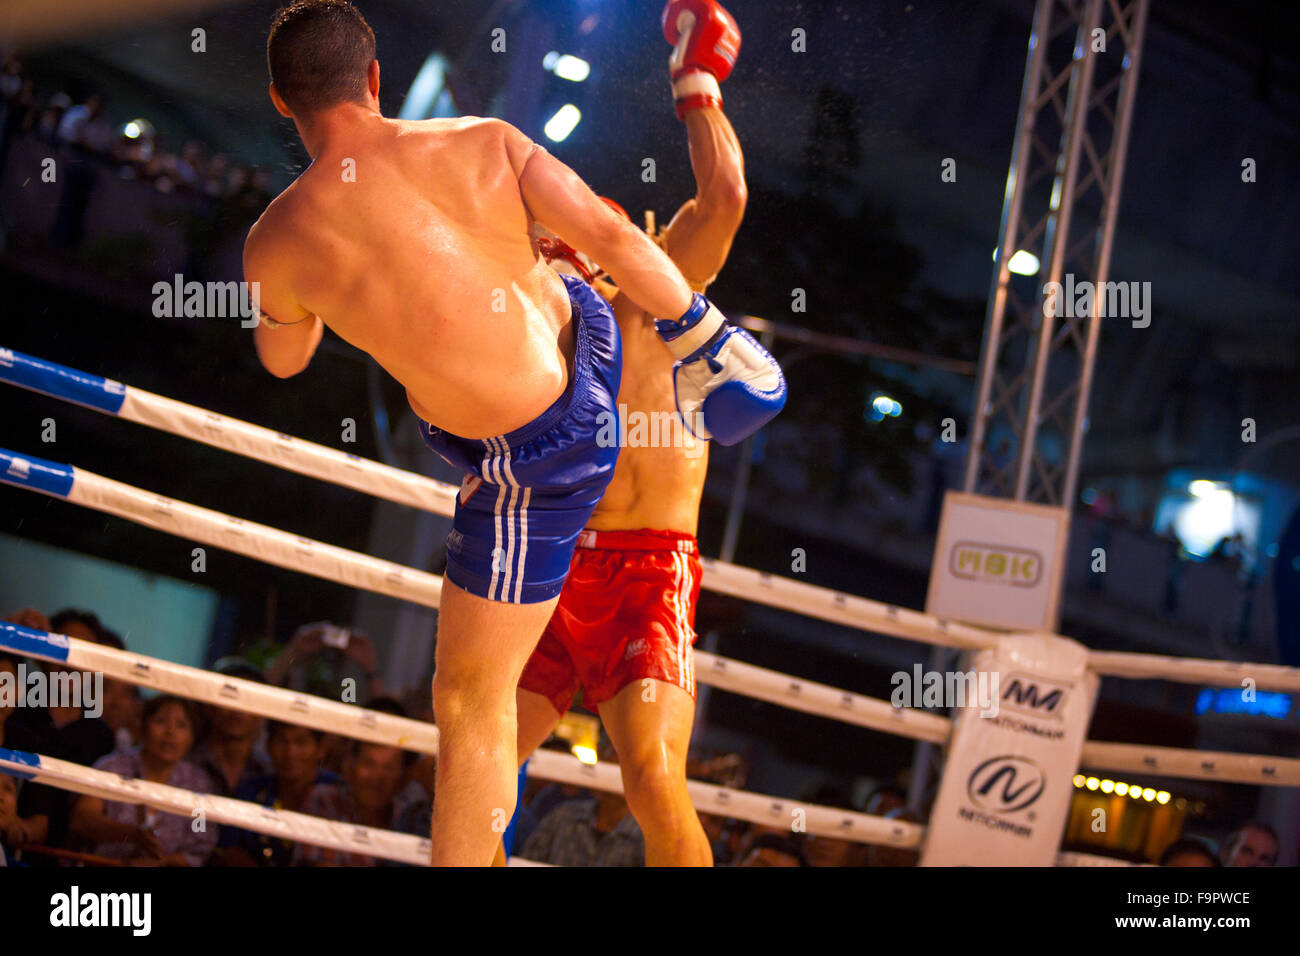 Male muay thai kickboxer kicking solid shot to opponent's head launching sweat flying everywhere at amateur - Stock Image